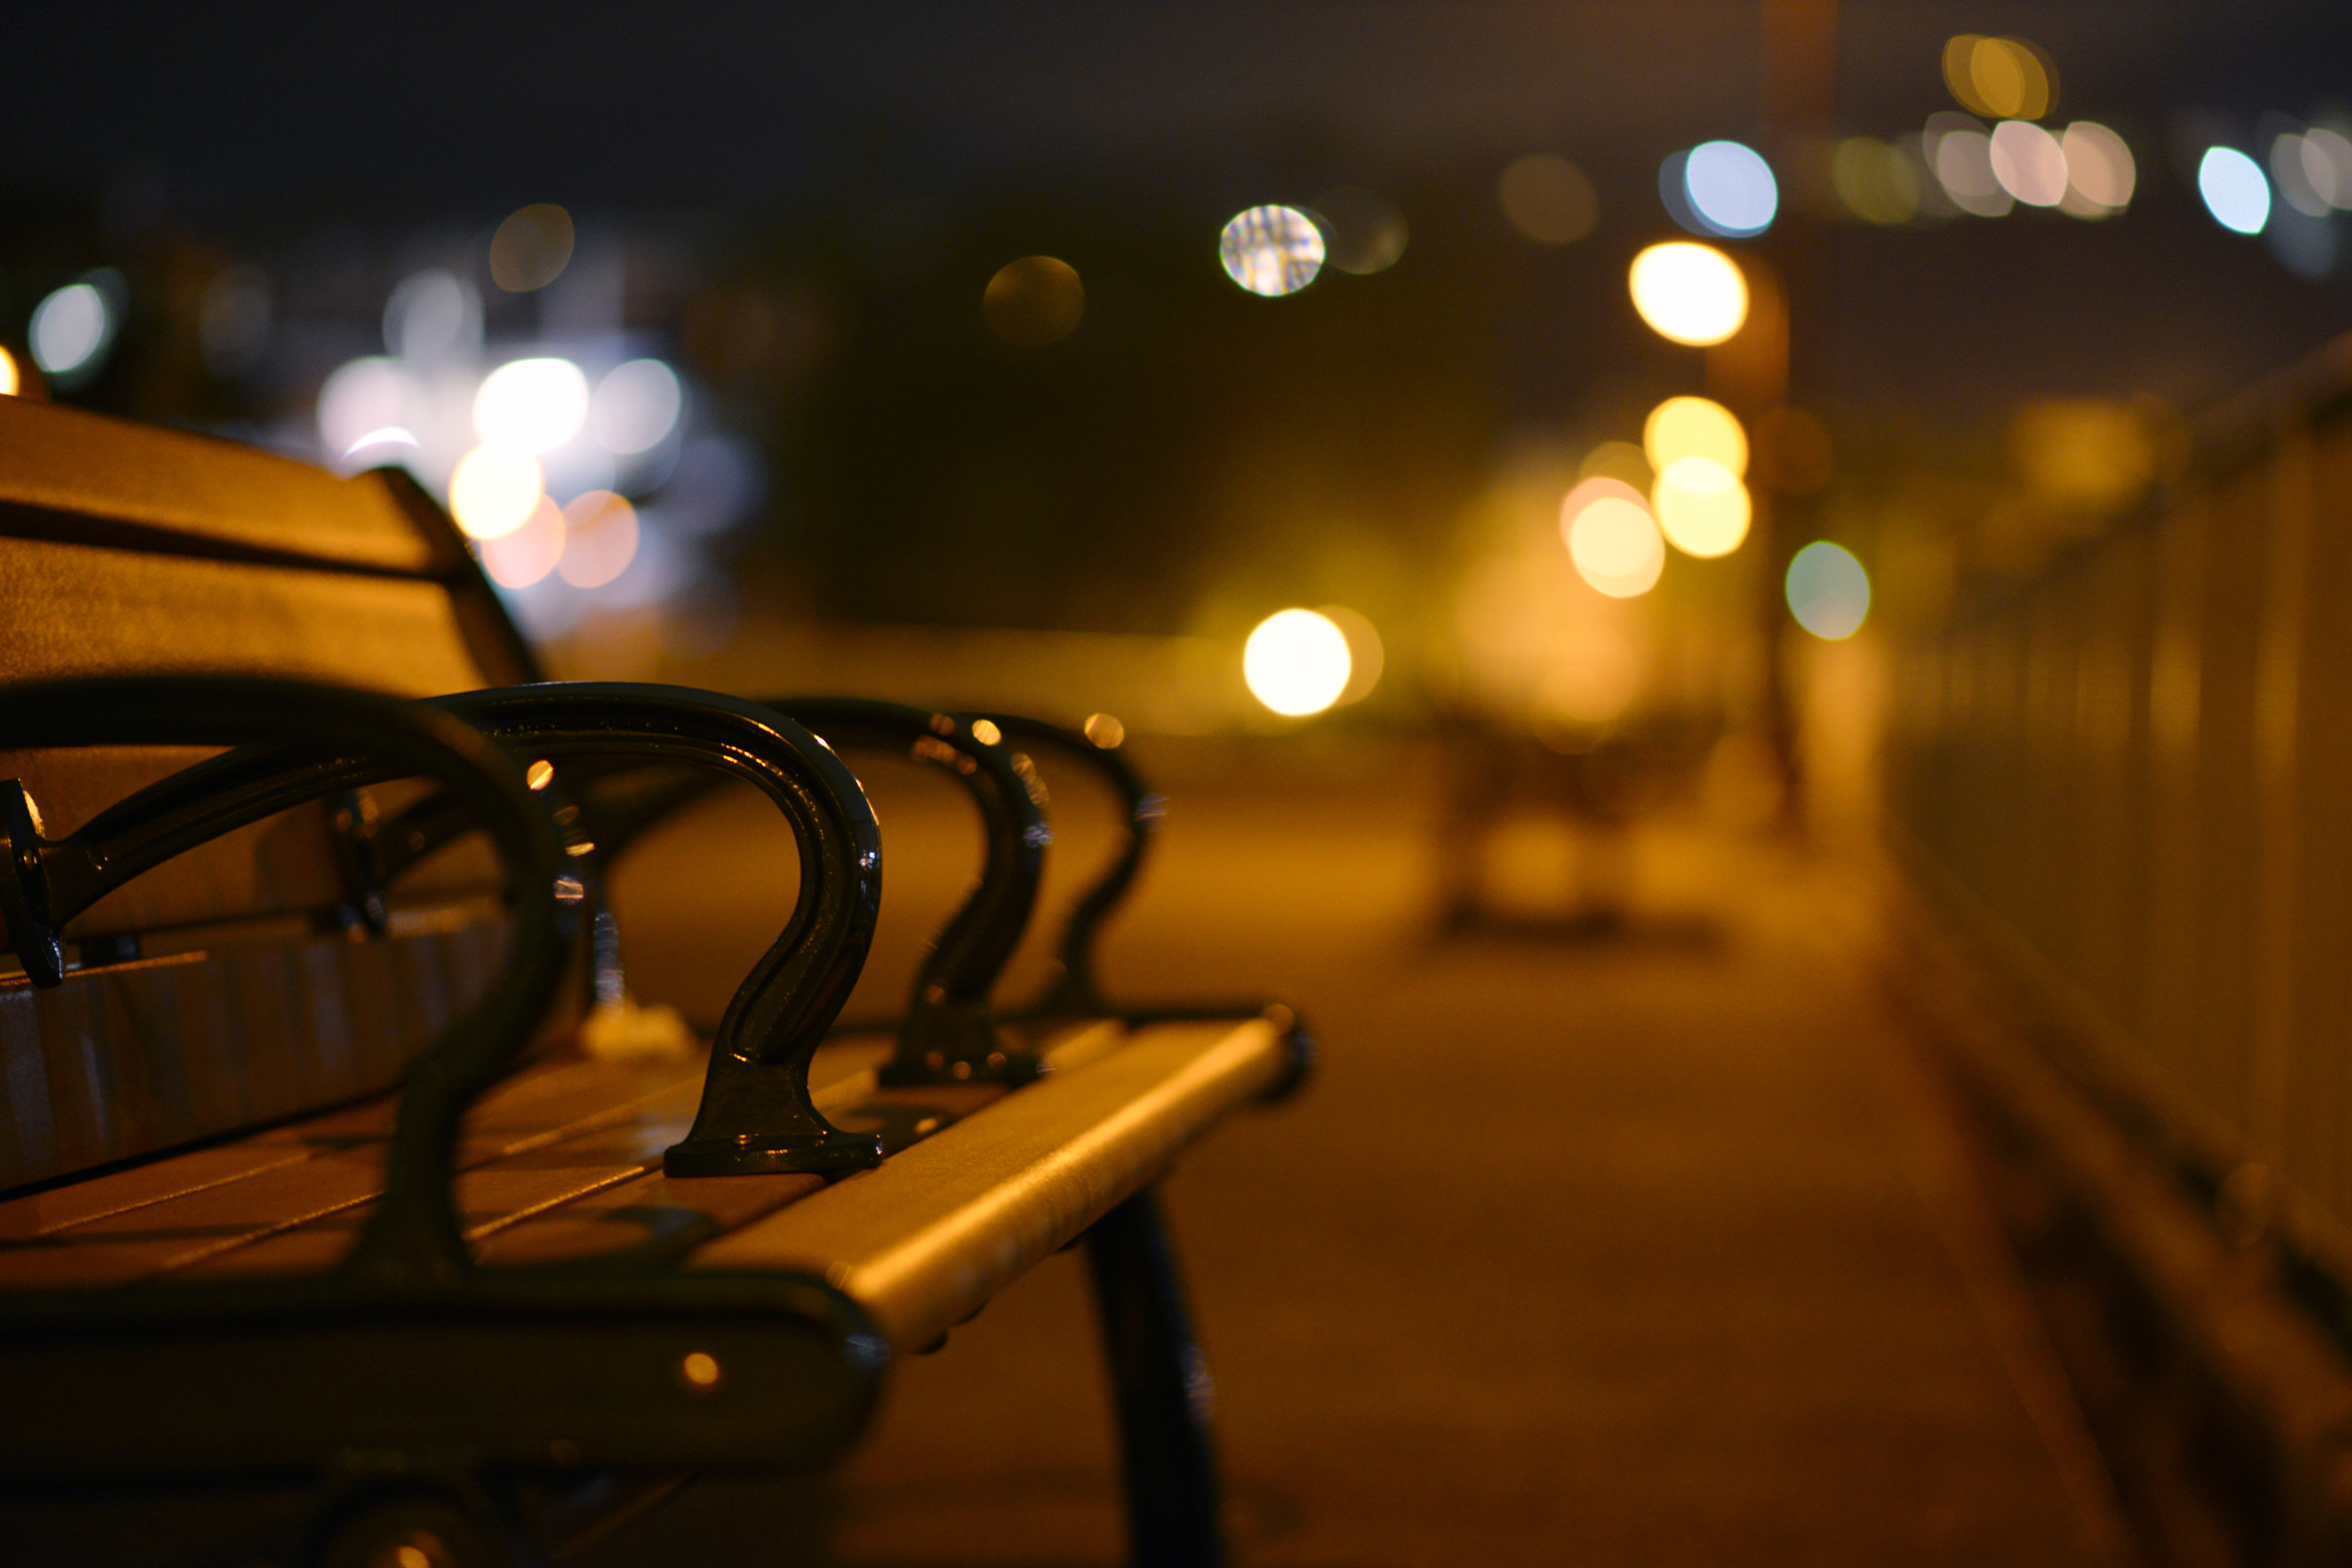 Bench Hd Wallpaper Background Image 3000x2000 Id